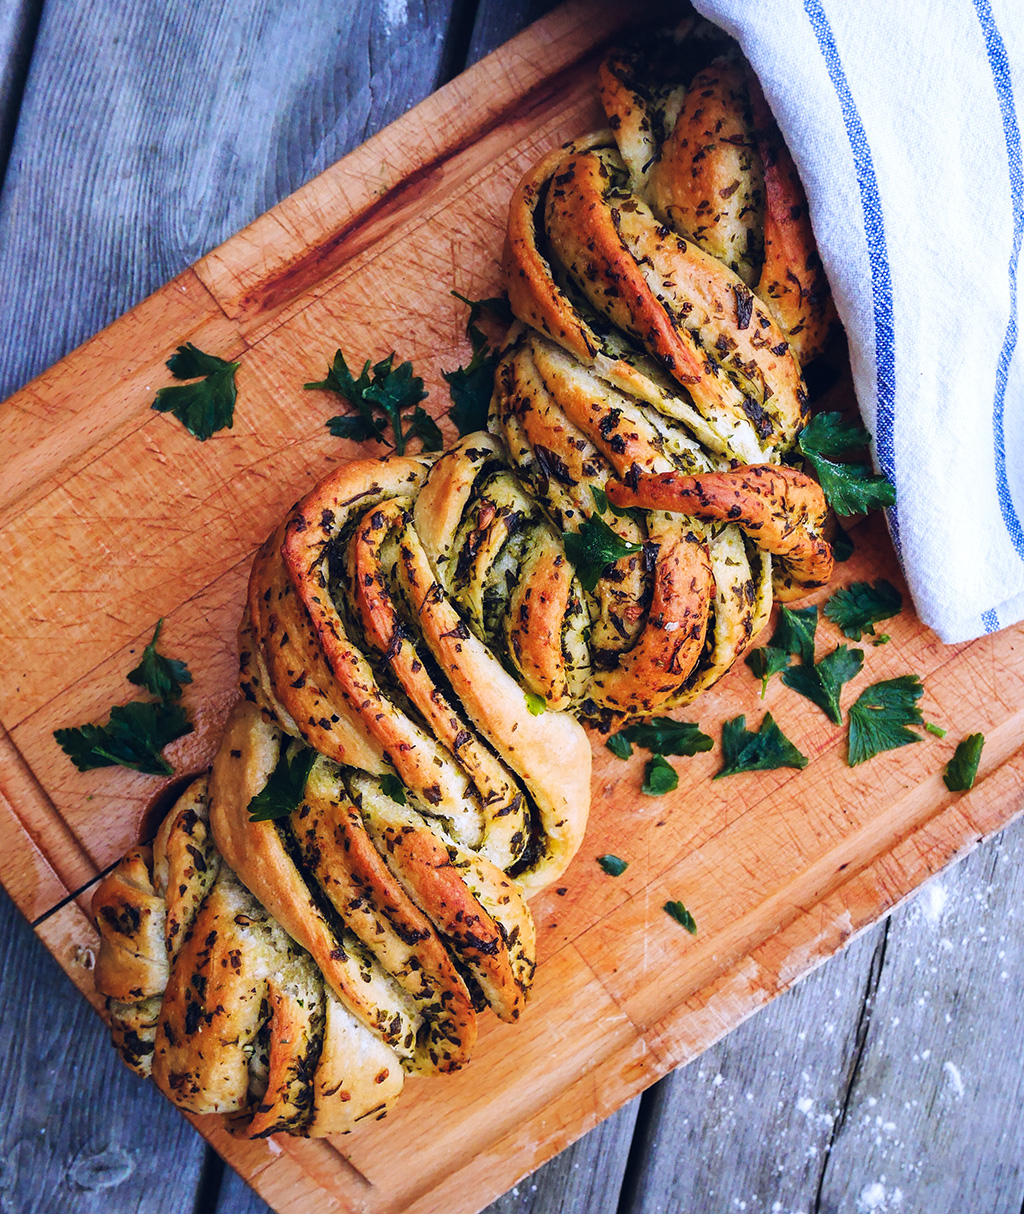 Garlic & Parsley Twist Bread